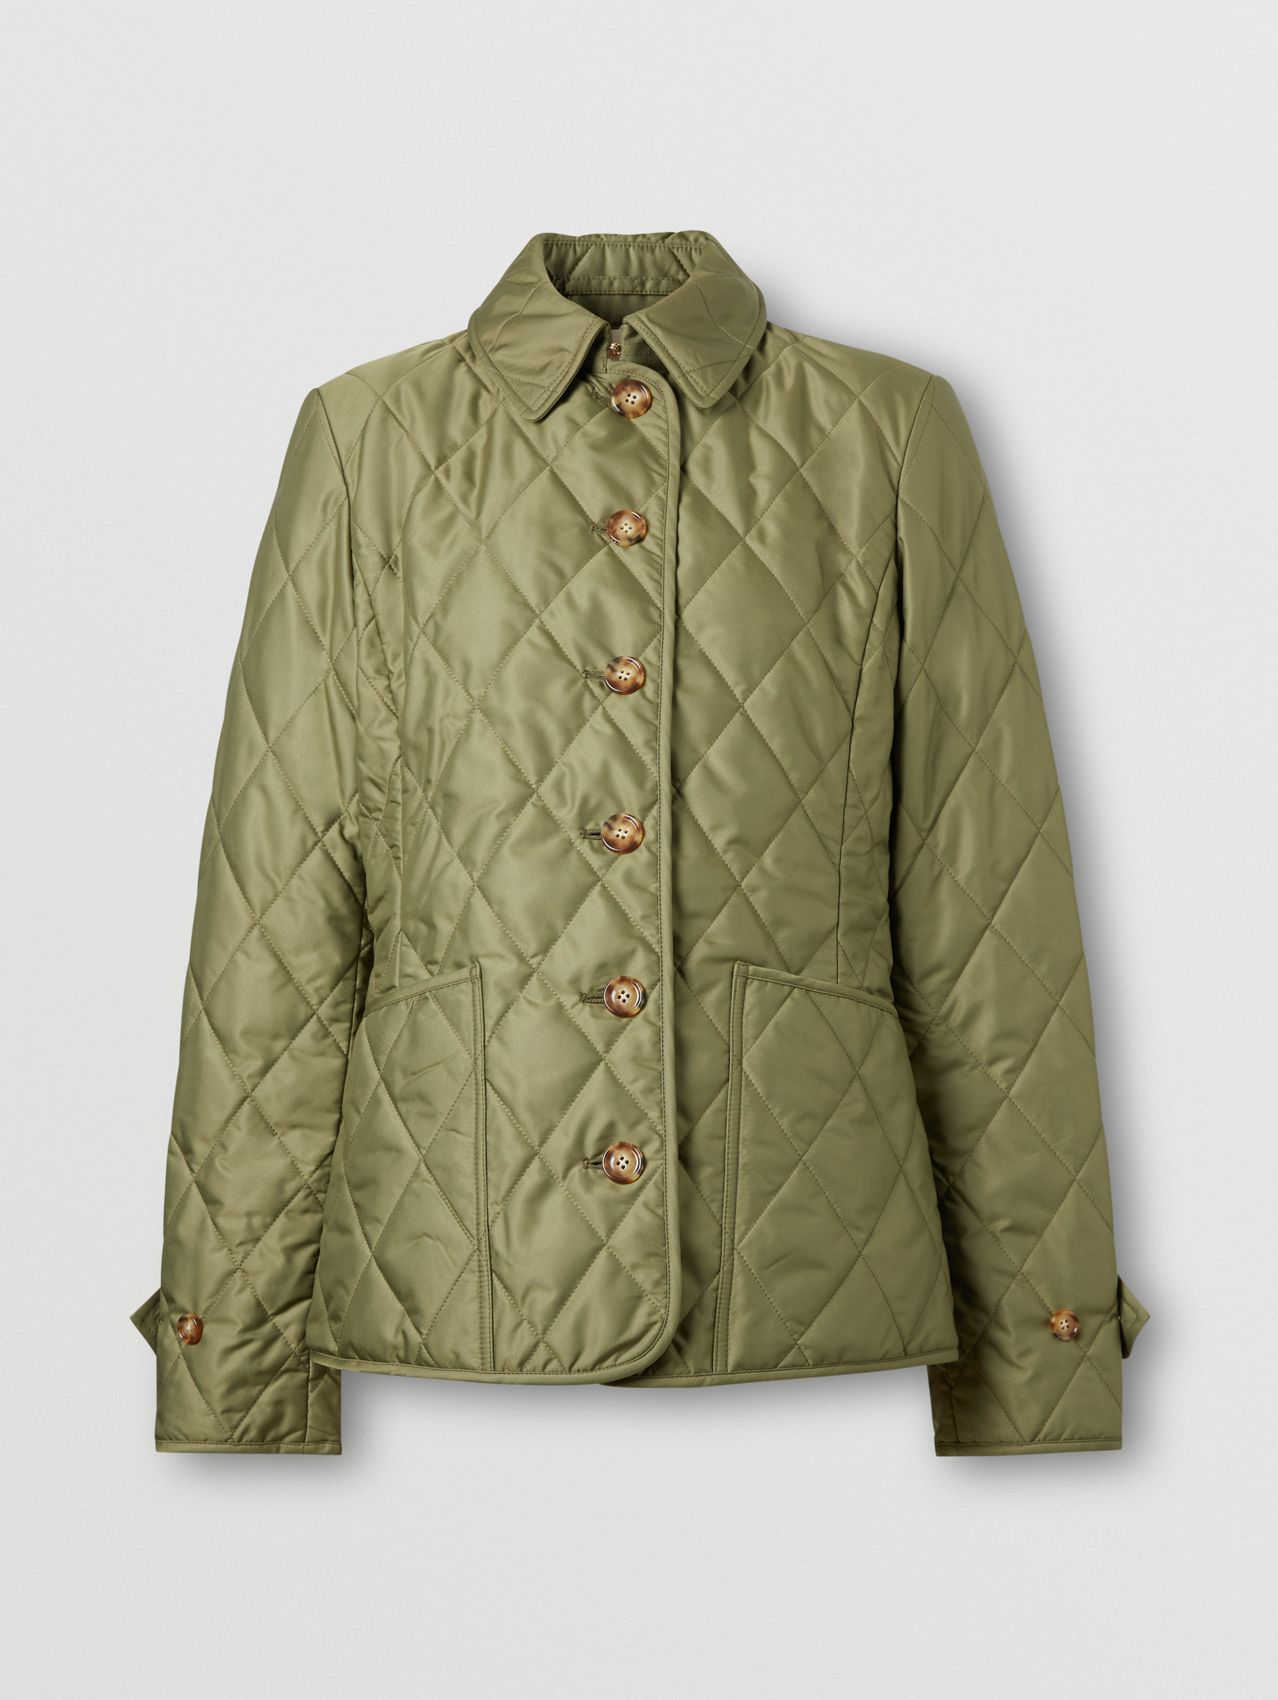 Diamond Quilted Thermoregulated Jacket in Olive Green